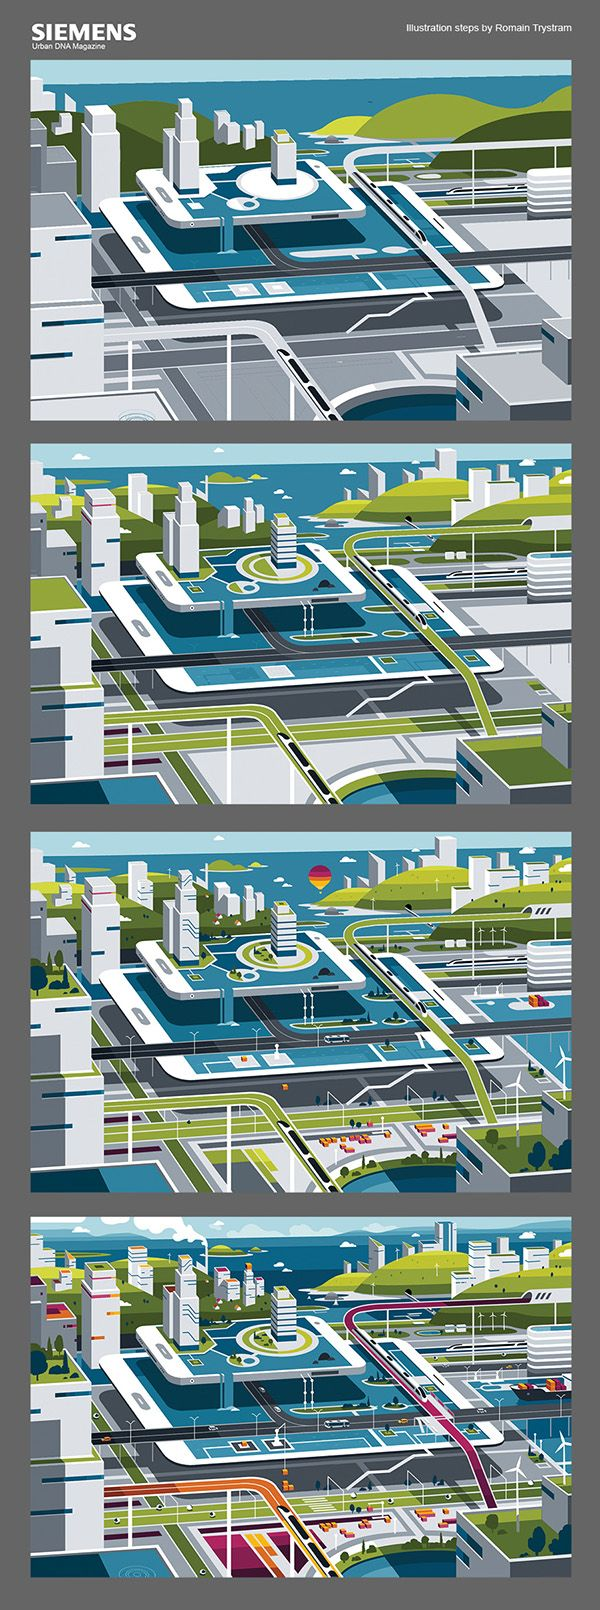 Siemens Urban DNA Digital Art, Editorial Design, Illustration   I was commissioned by independent medien design to do a couple of illustrations for Siemens Urban DNA Magazine issue n°5.  They asked me to illustrate the process of a new service that Siemens have launched.